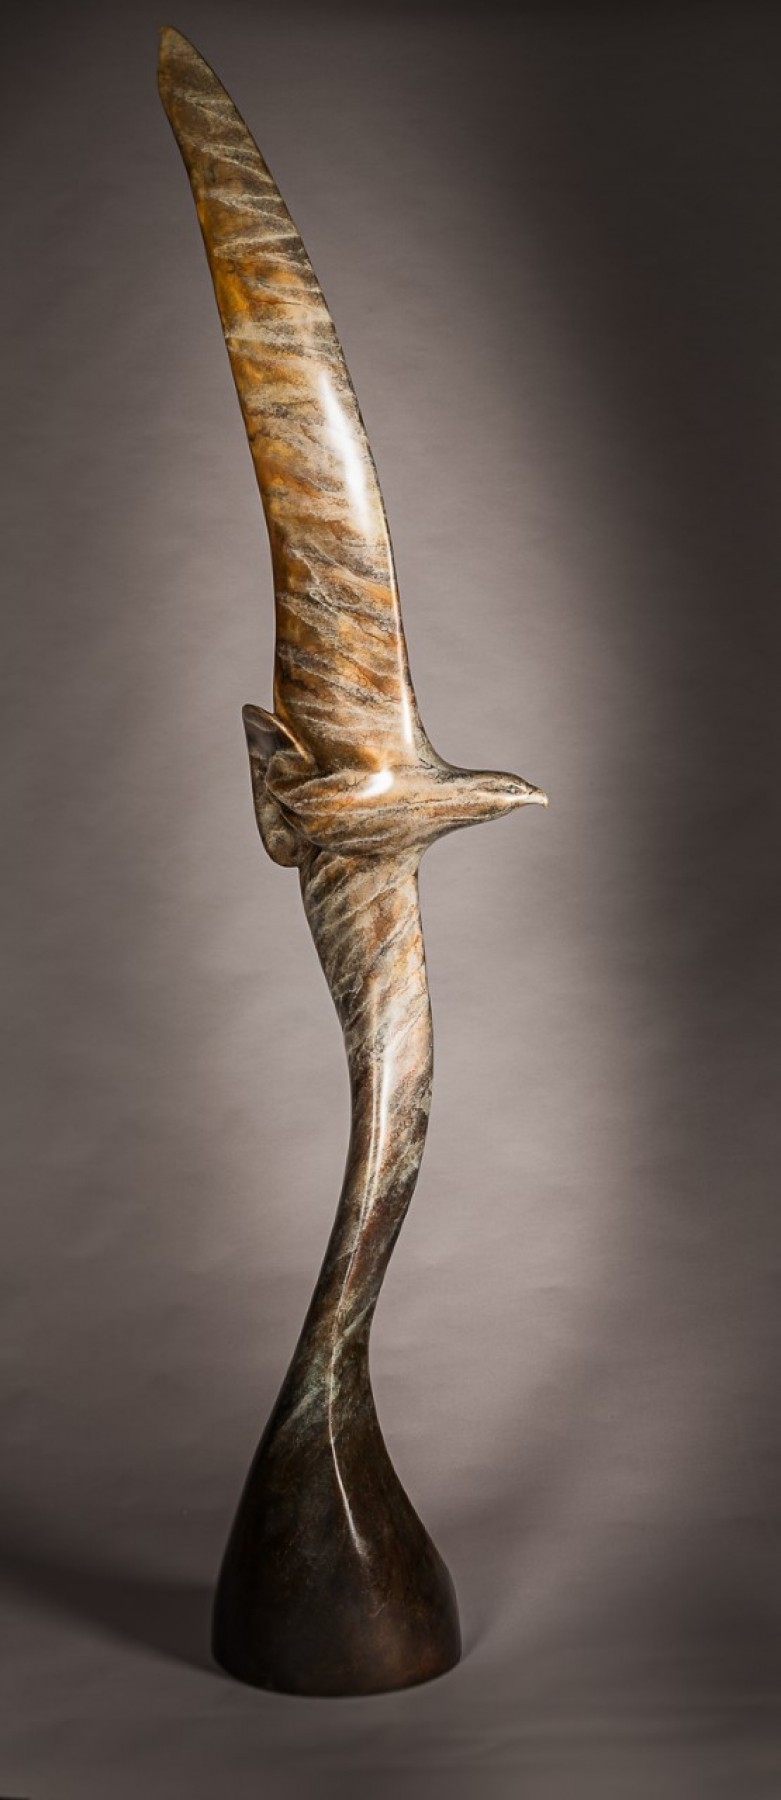 Riding the Thermals Life Size Bronze Sculpture 2017 97 in